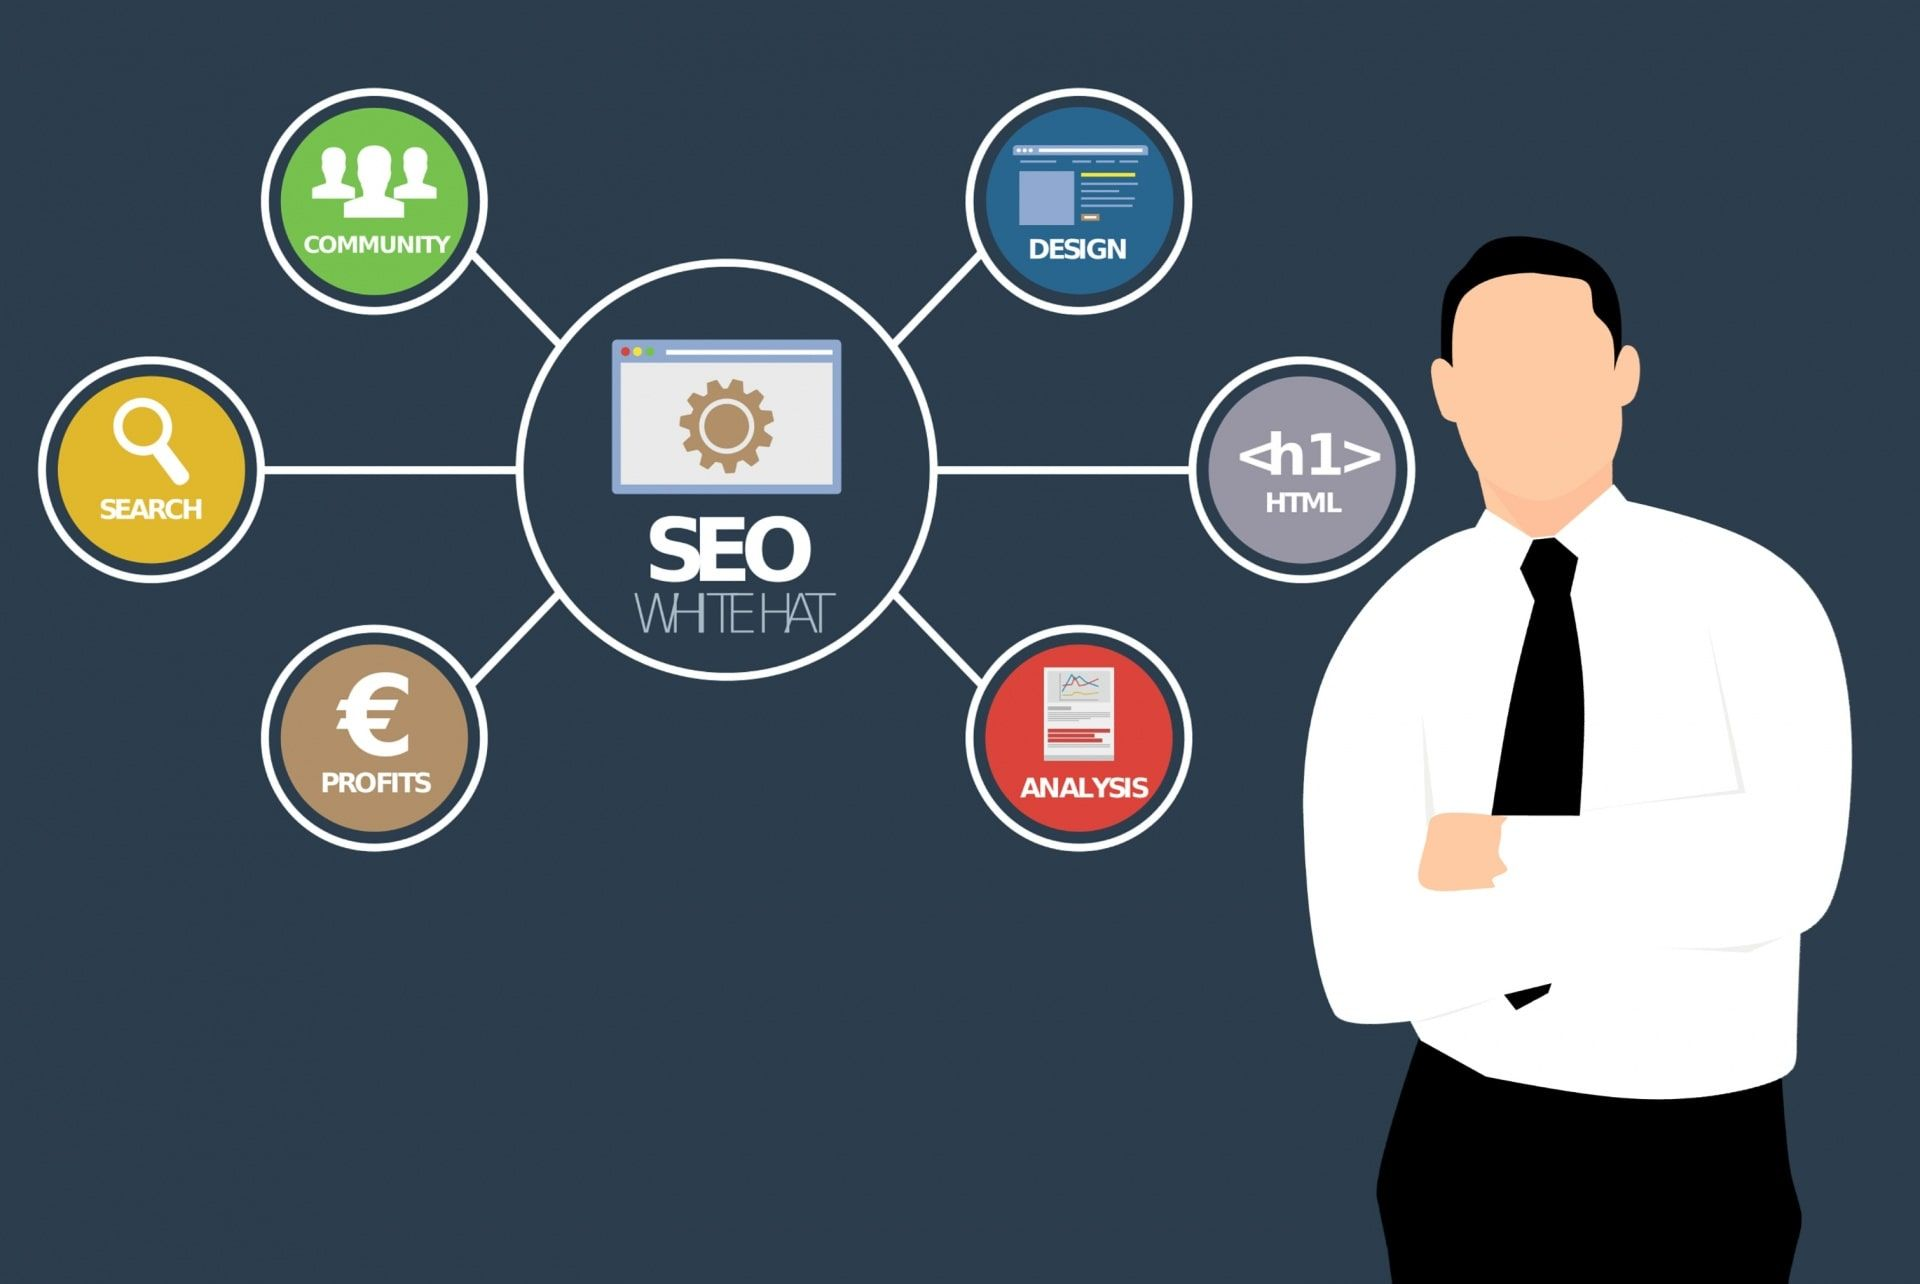 SEO Strategy Graphic